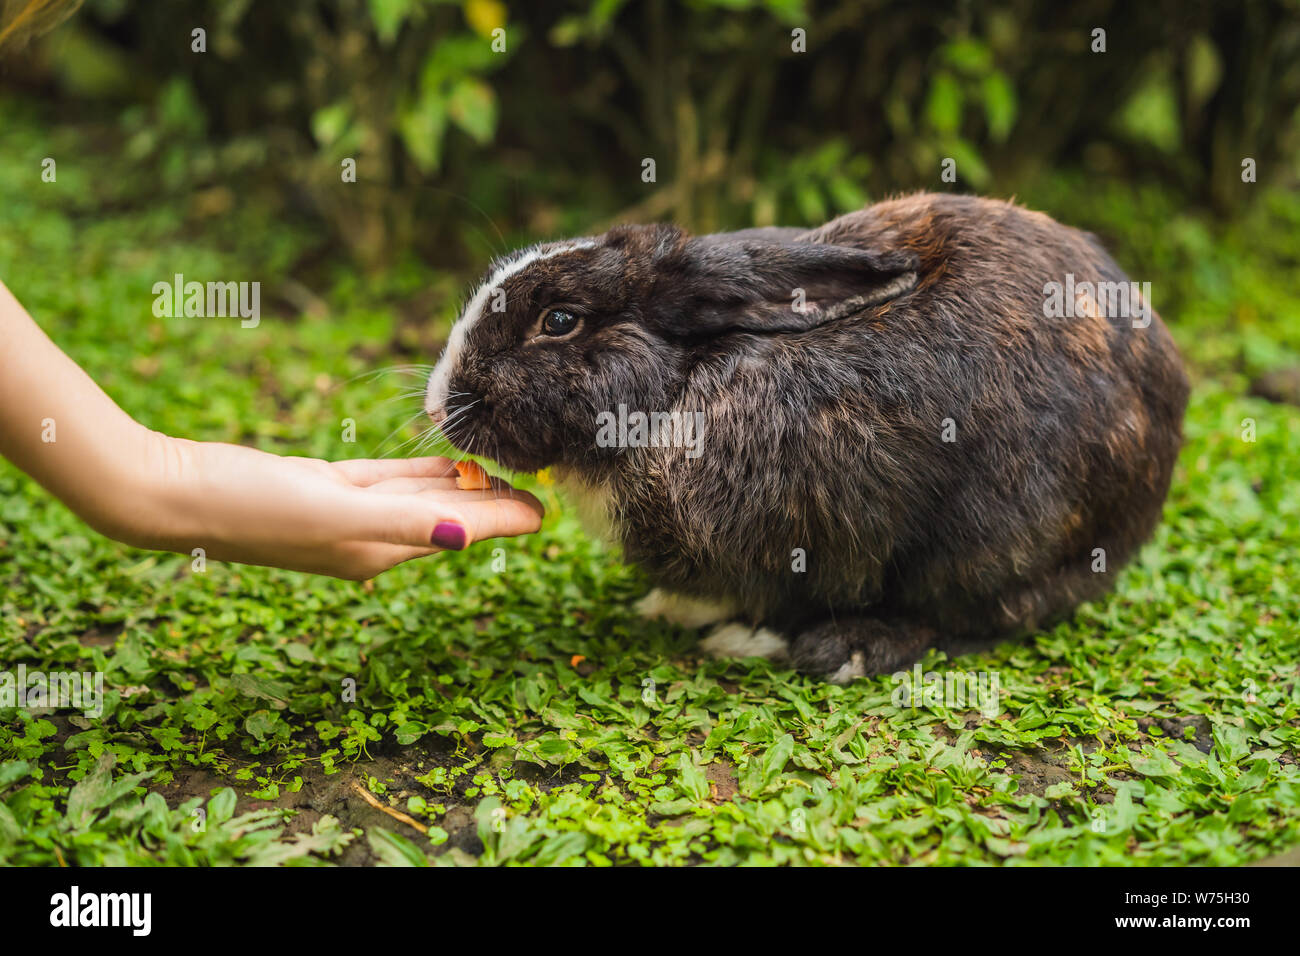 Hands feed the rabbit. Cosmetics test on rabbit animal. Cruelty free and stop animal abuse concept Stock Photo